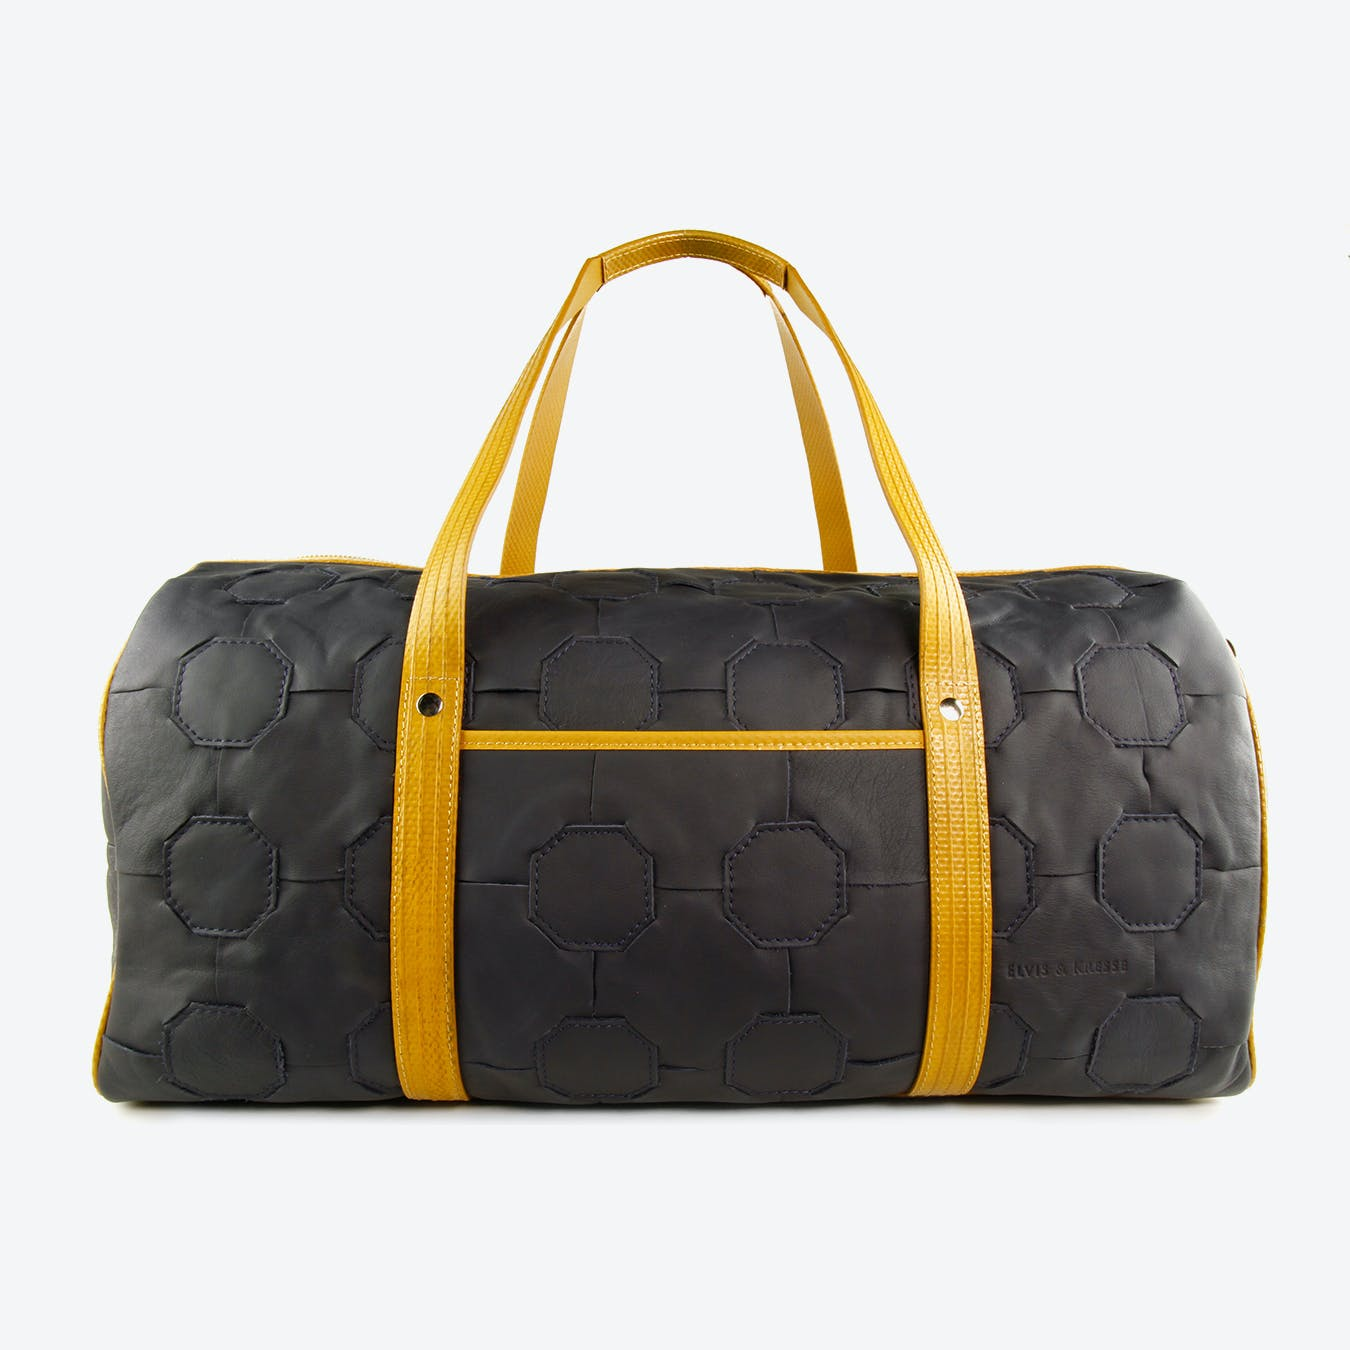 Fire & Hide Duffel Bag in Dark Blue Burberry Leather & Yellow Fire-Hoses